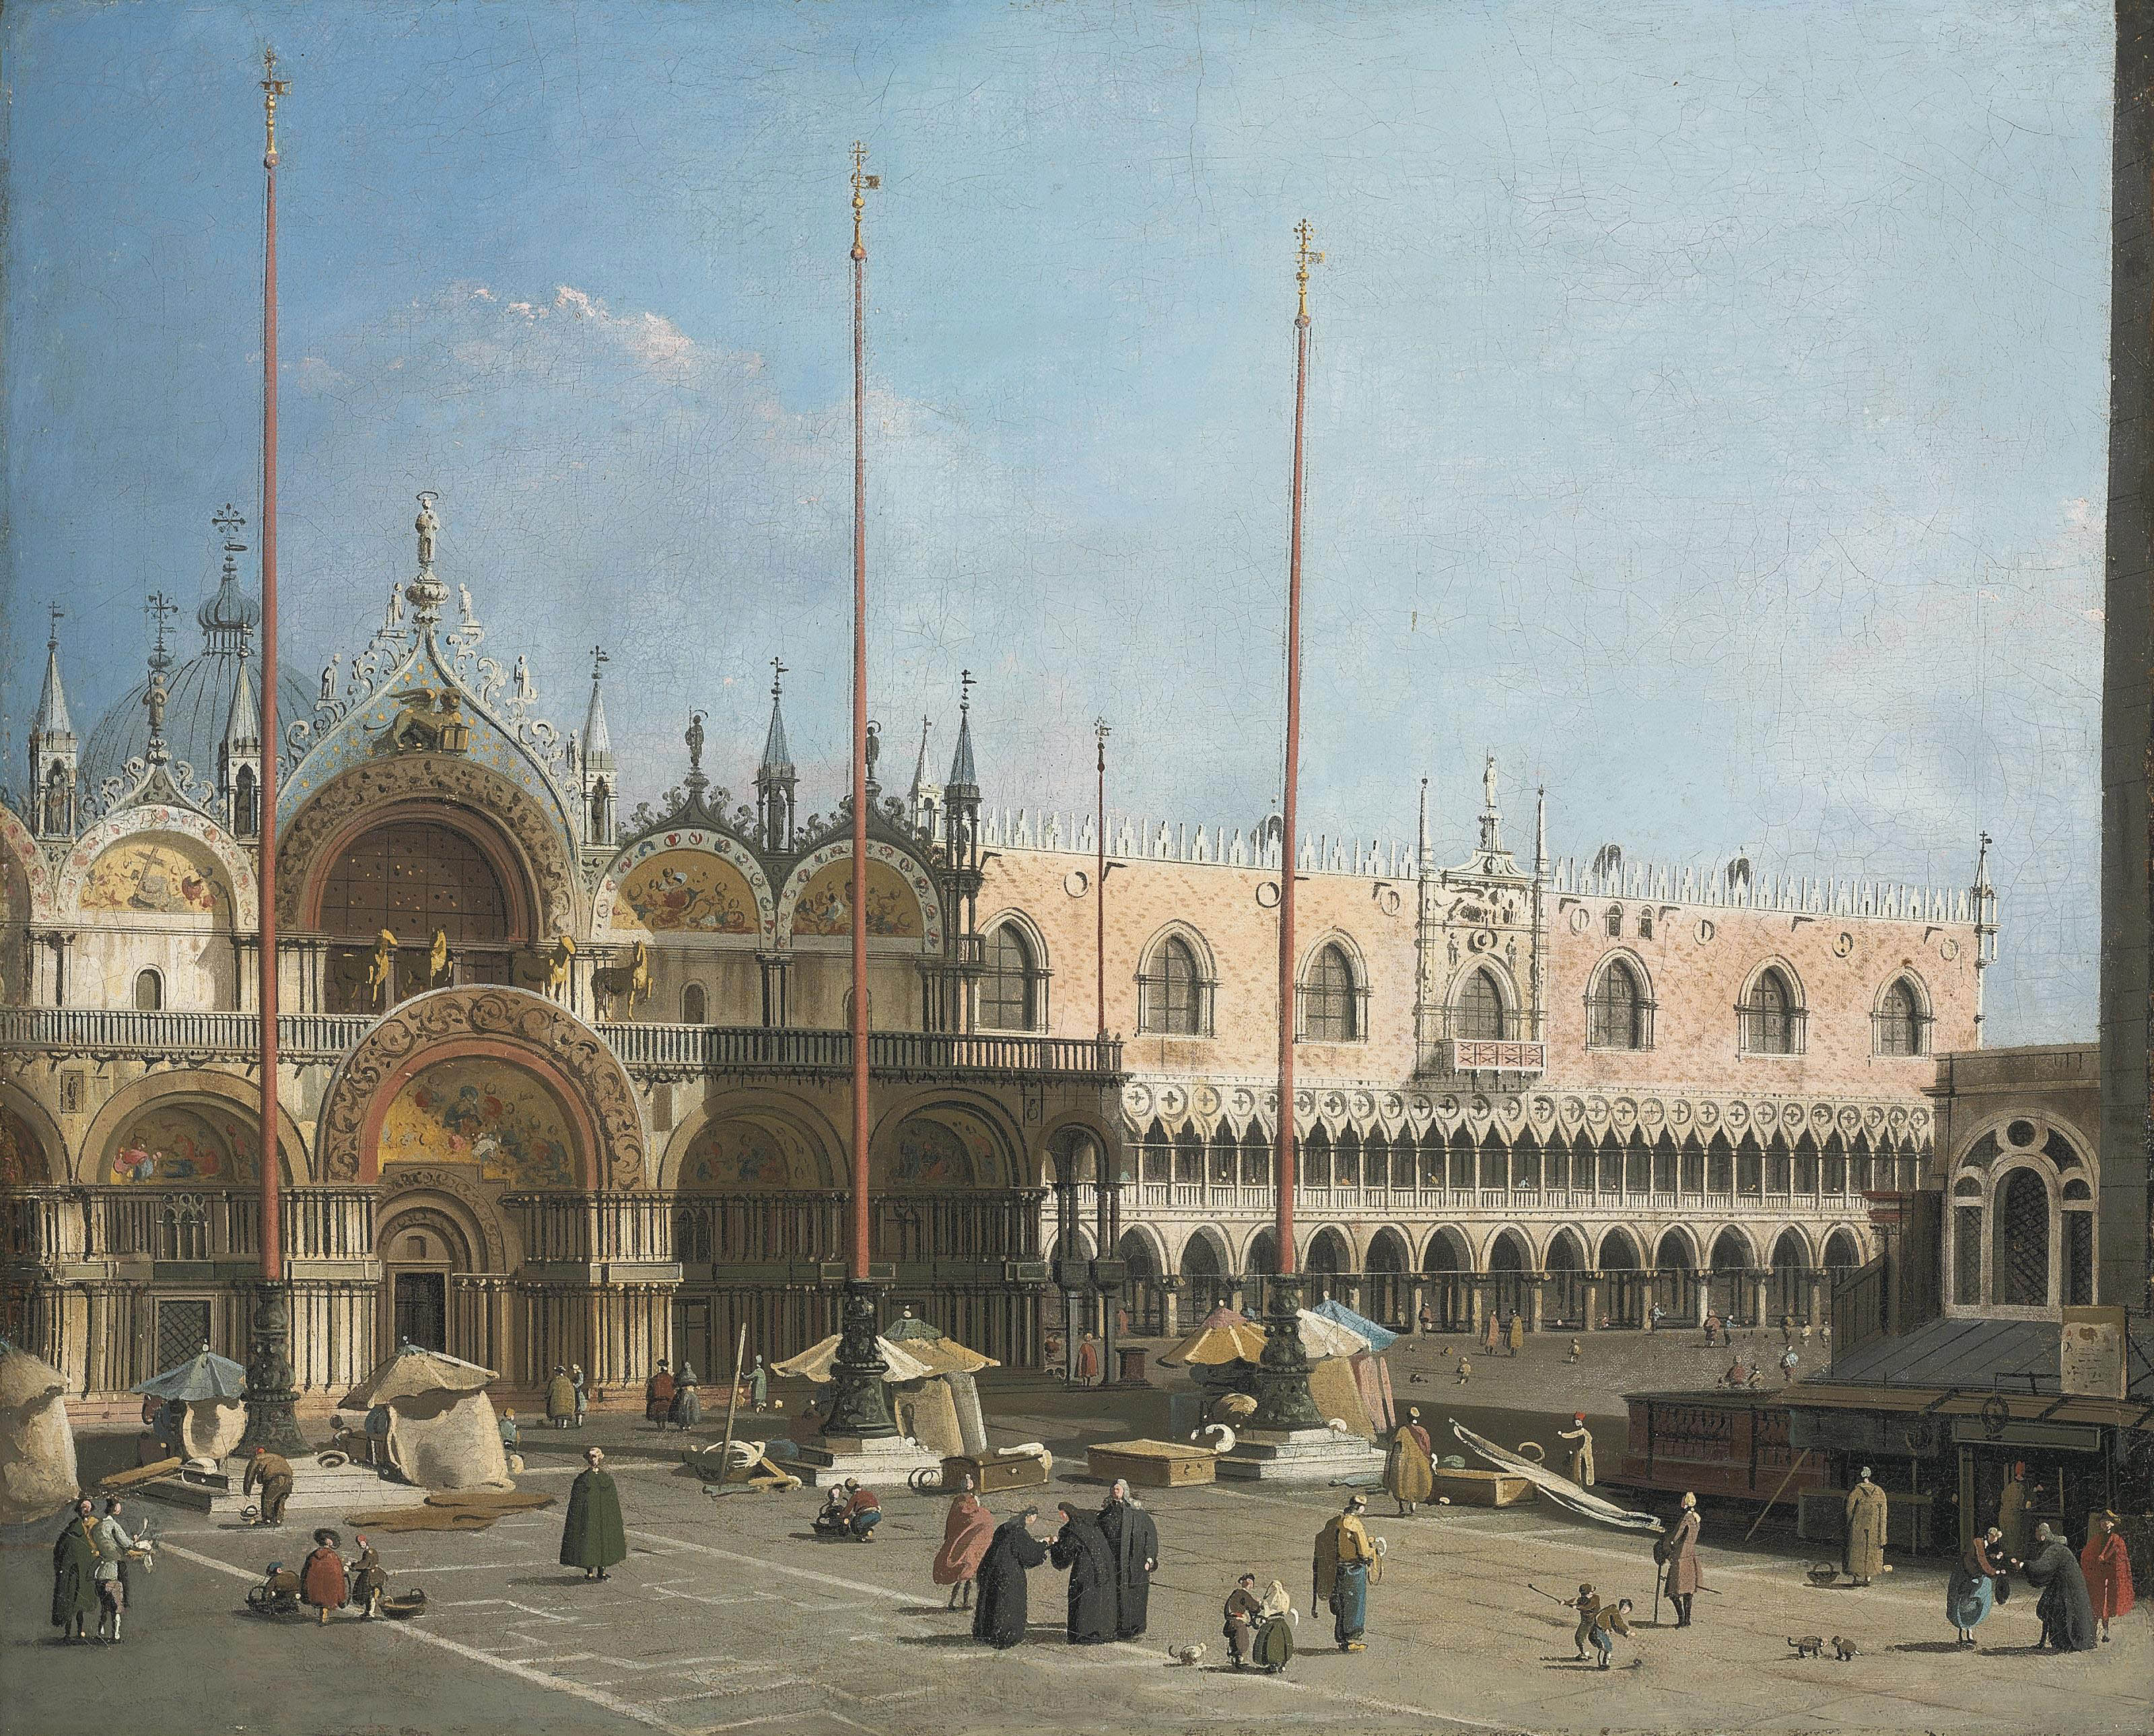 The Piazza San Marco, Venice, looking east towards the Basilica and the Doge's Palace